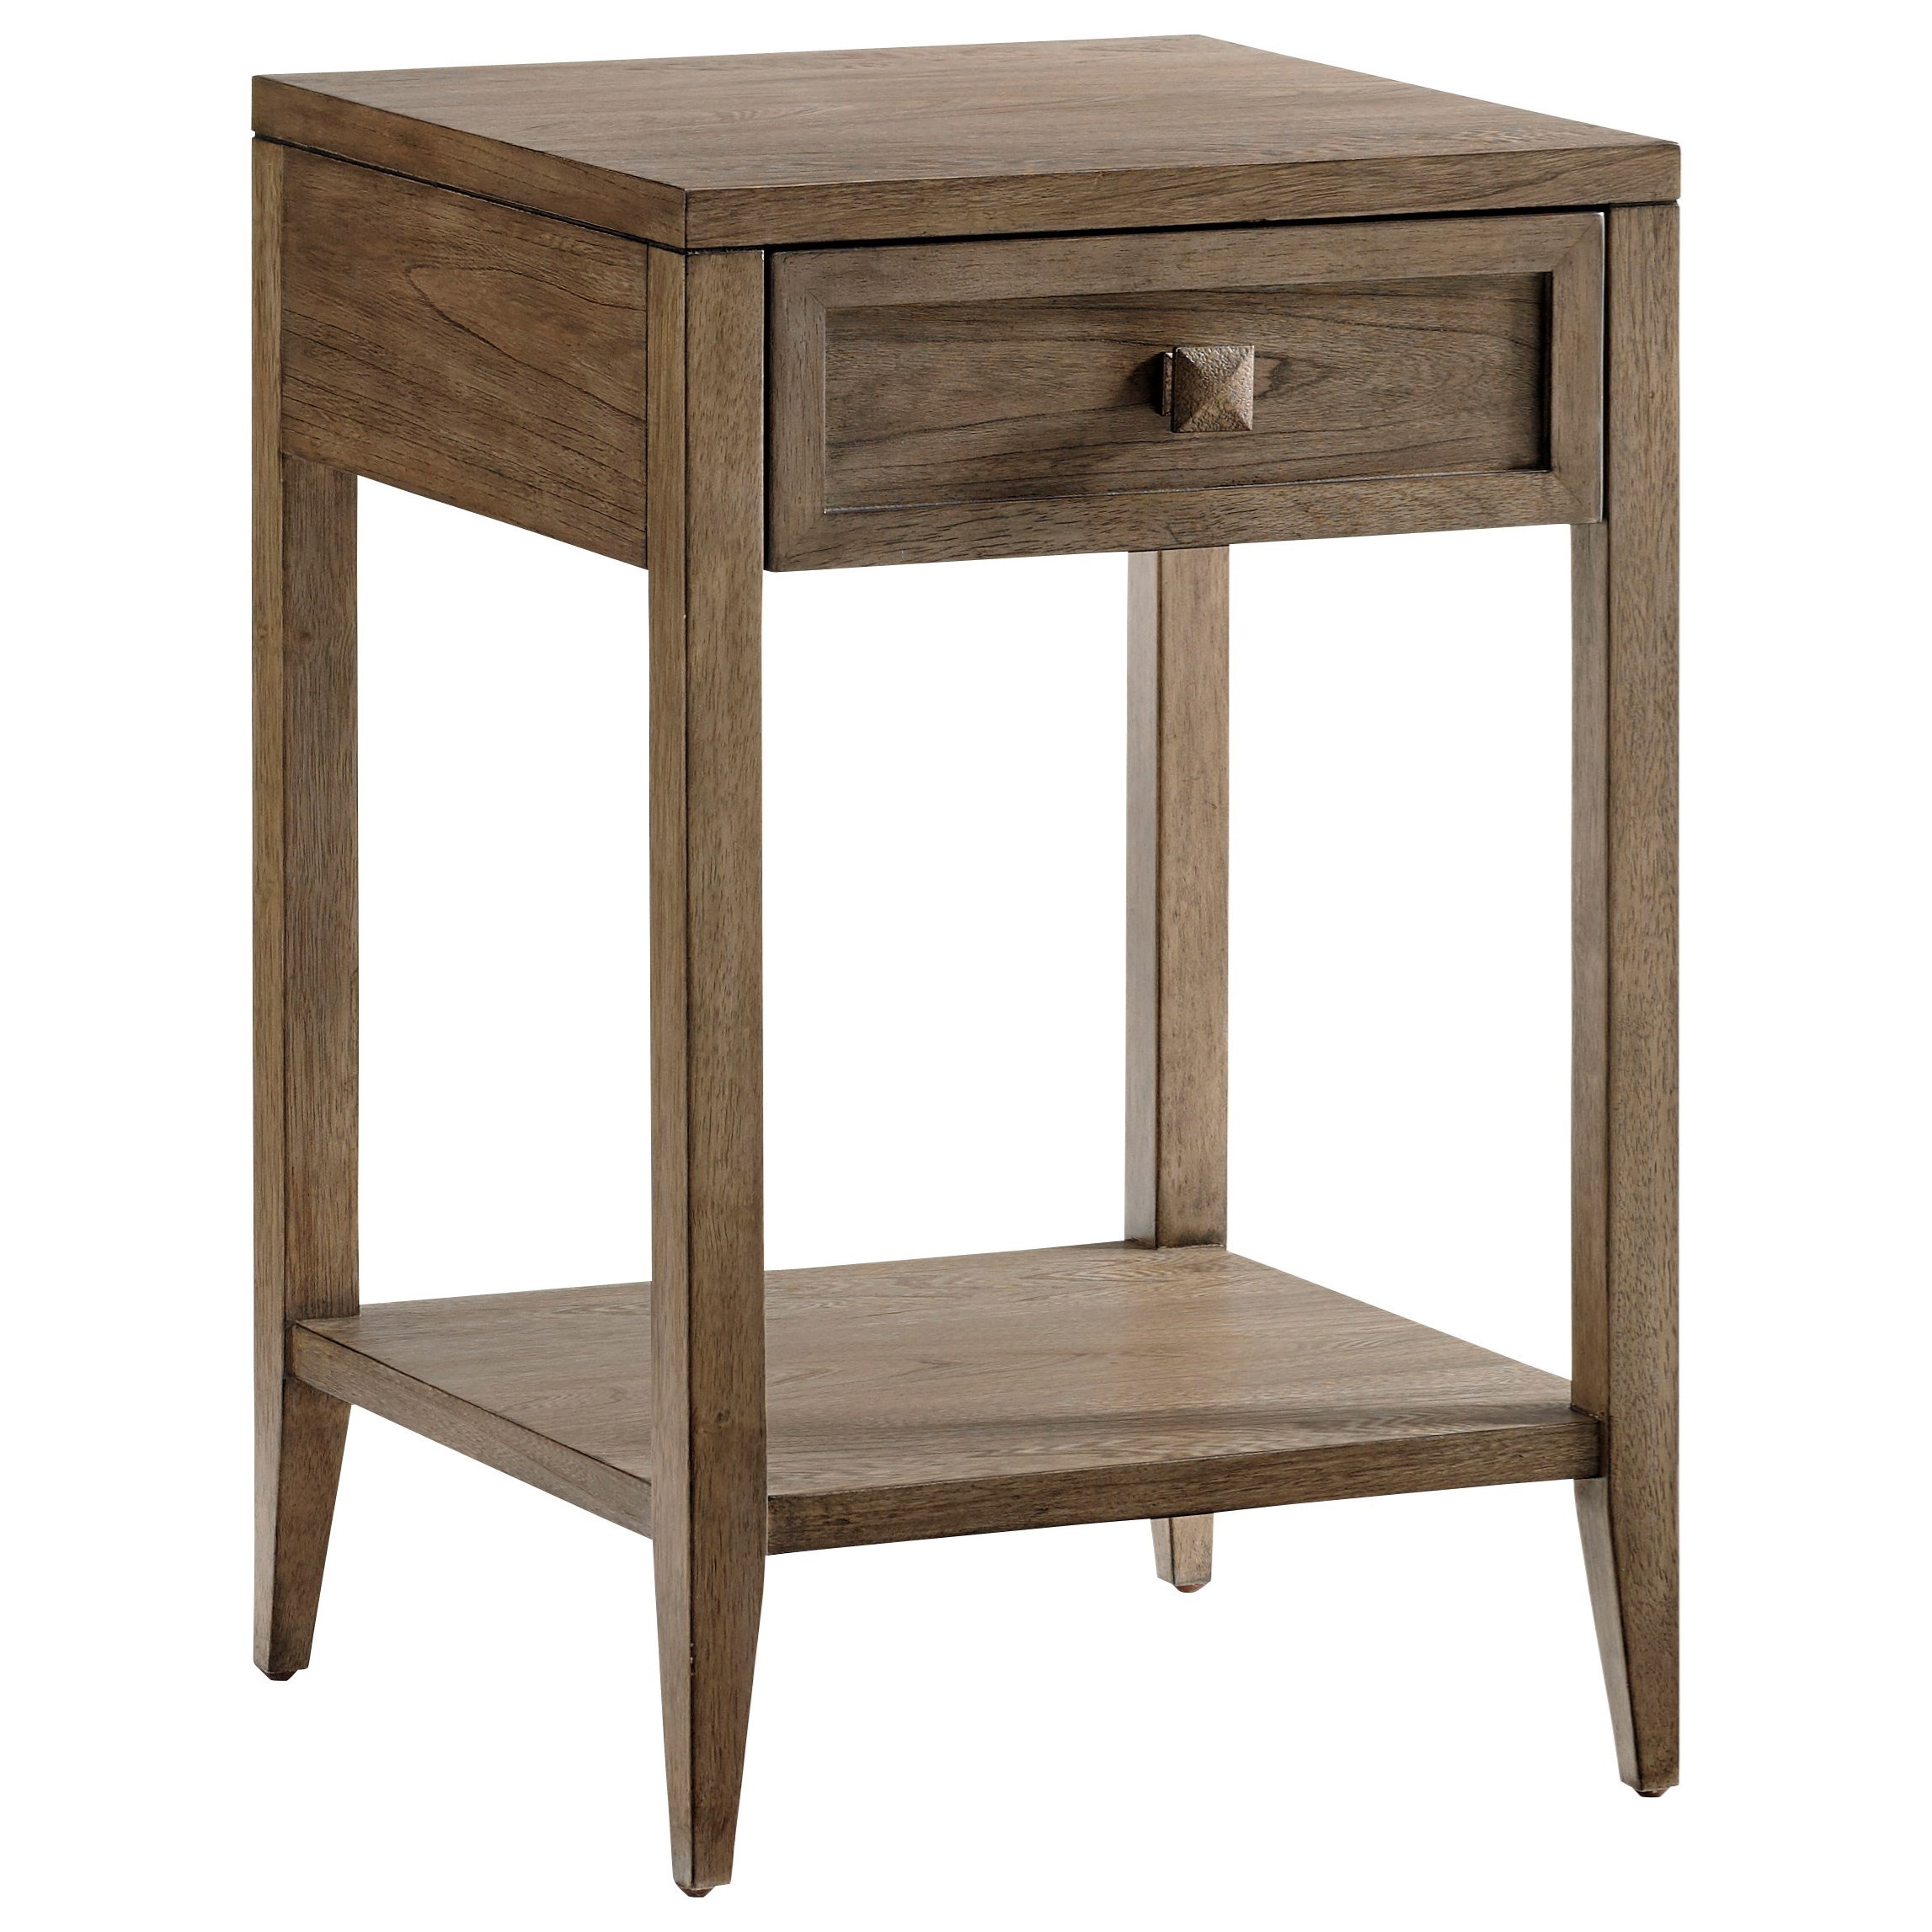 Cypress Point Ellsworth Night Table by Tommy Bahama Home at Baer's Furniture